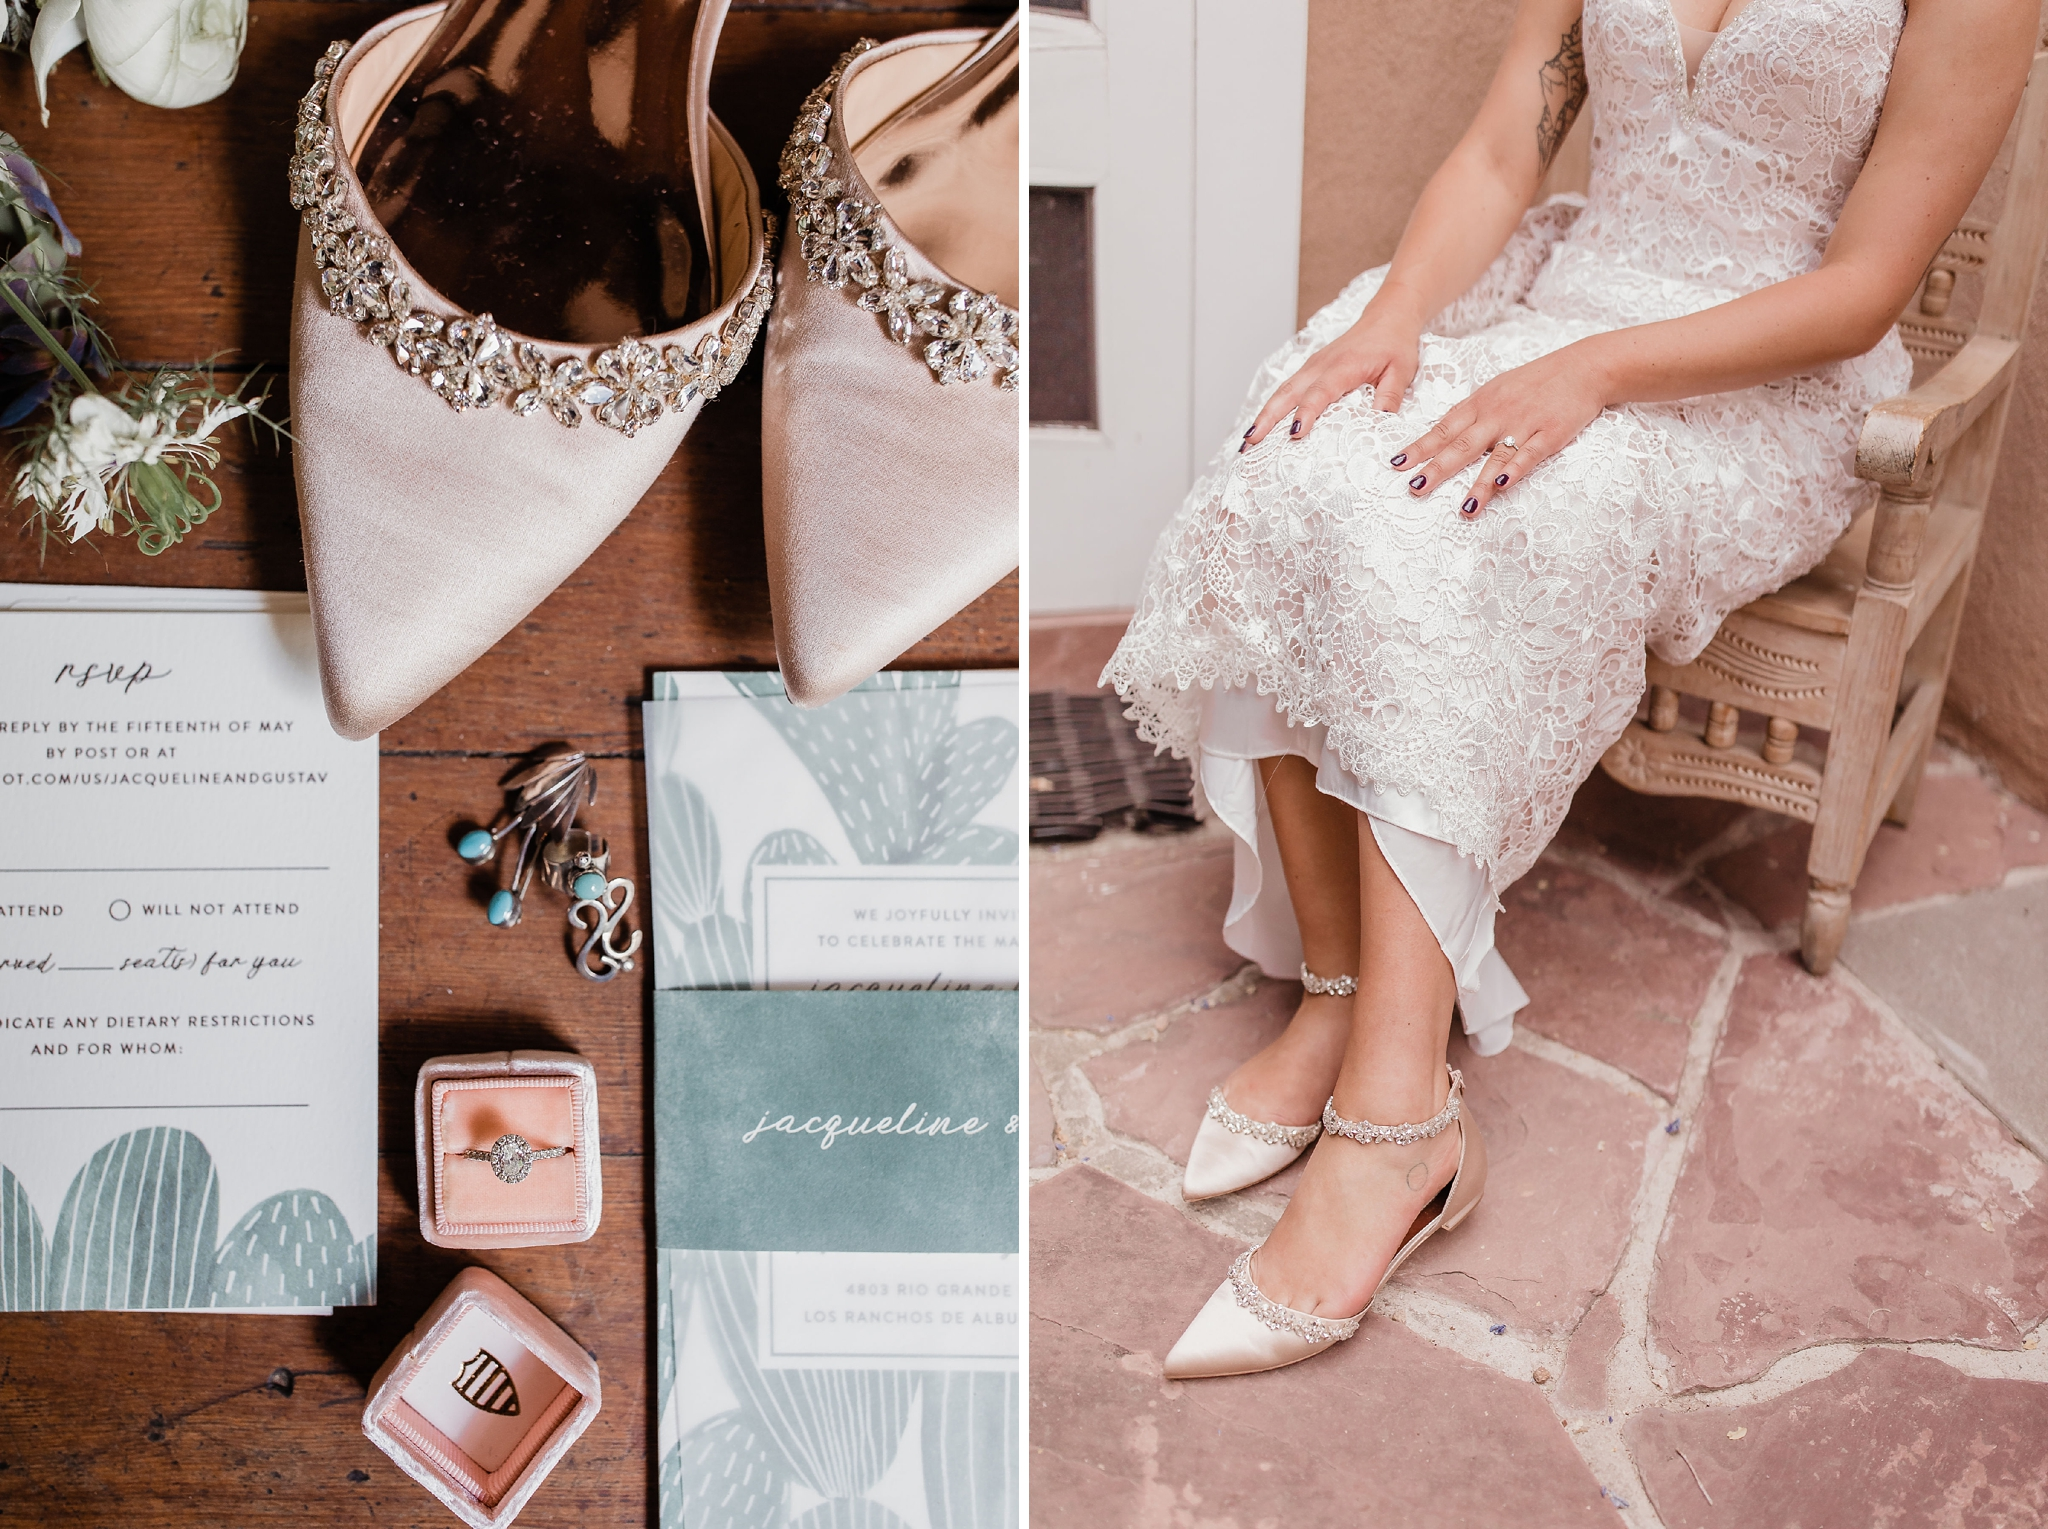 Alicia+lucia+photography+-+albuquerque+wedding+photographer+-+santa+fe+wedding+photography+-+new+mexico+wedding+photographer+-+new+mexico+wedding+-+new+mexico+wedding+-+colorado+wedding+-+bridal+shoes+-+bridal+inspo_0010.jpg